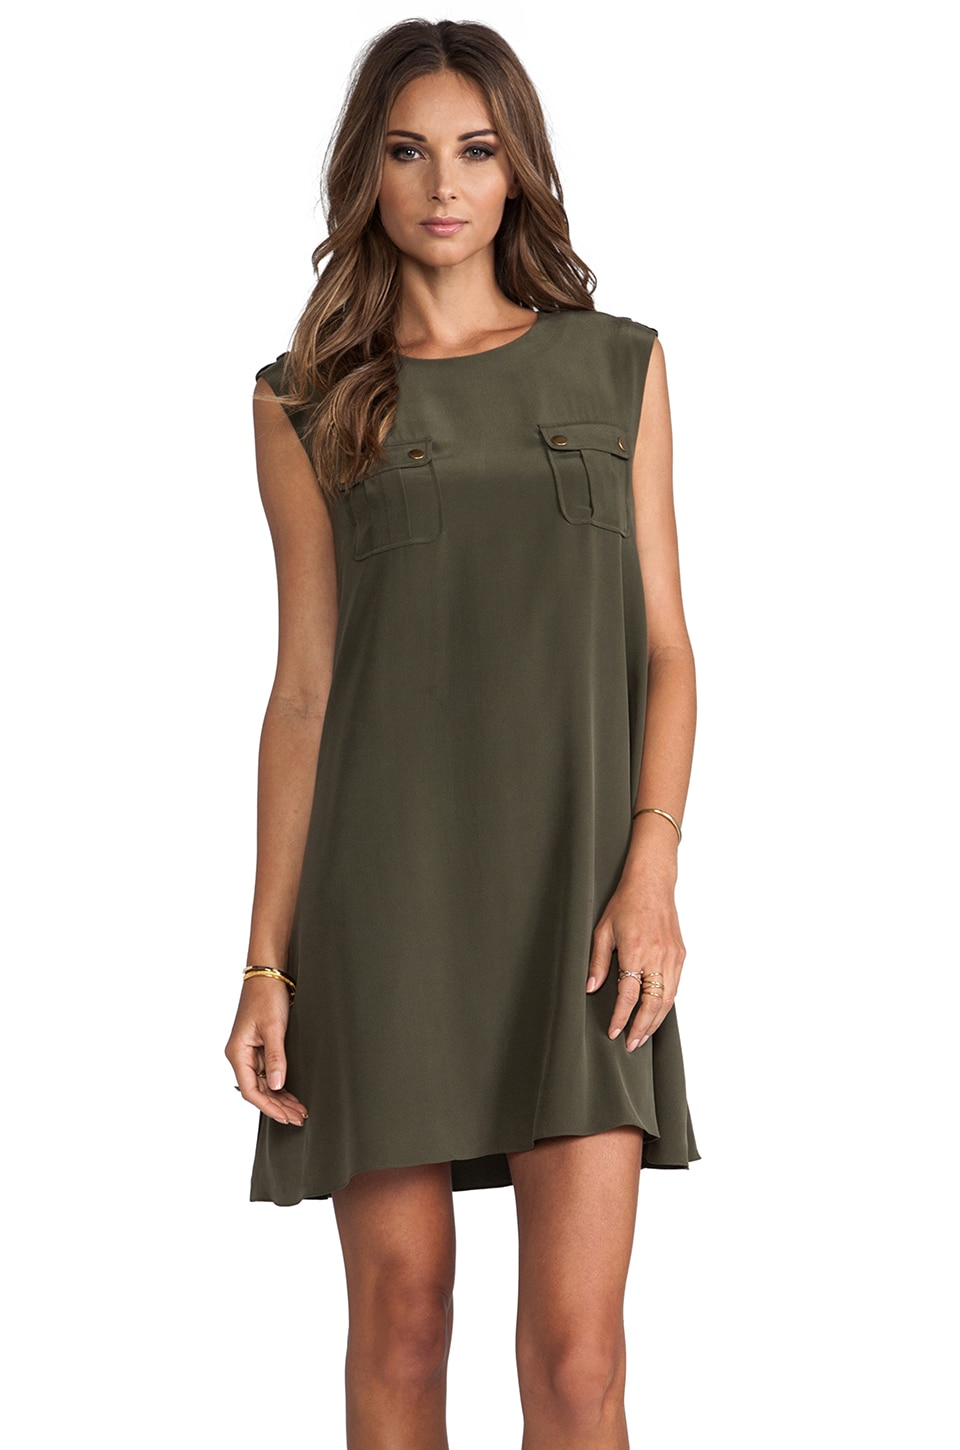 RACHEL ZOE Maribelle Sleeveless Safari Dress in Scout